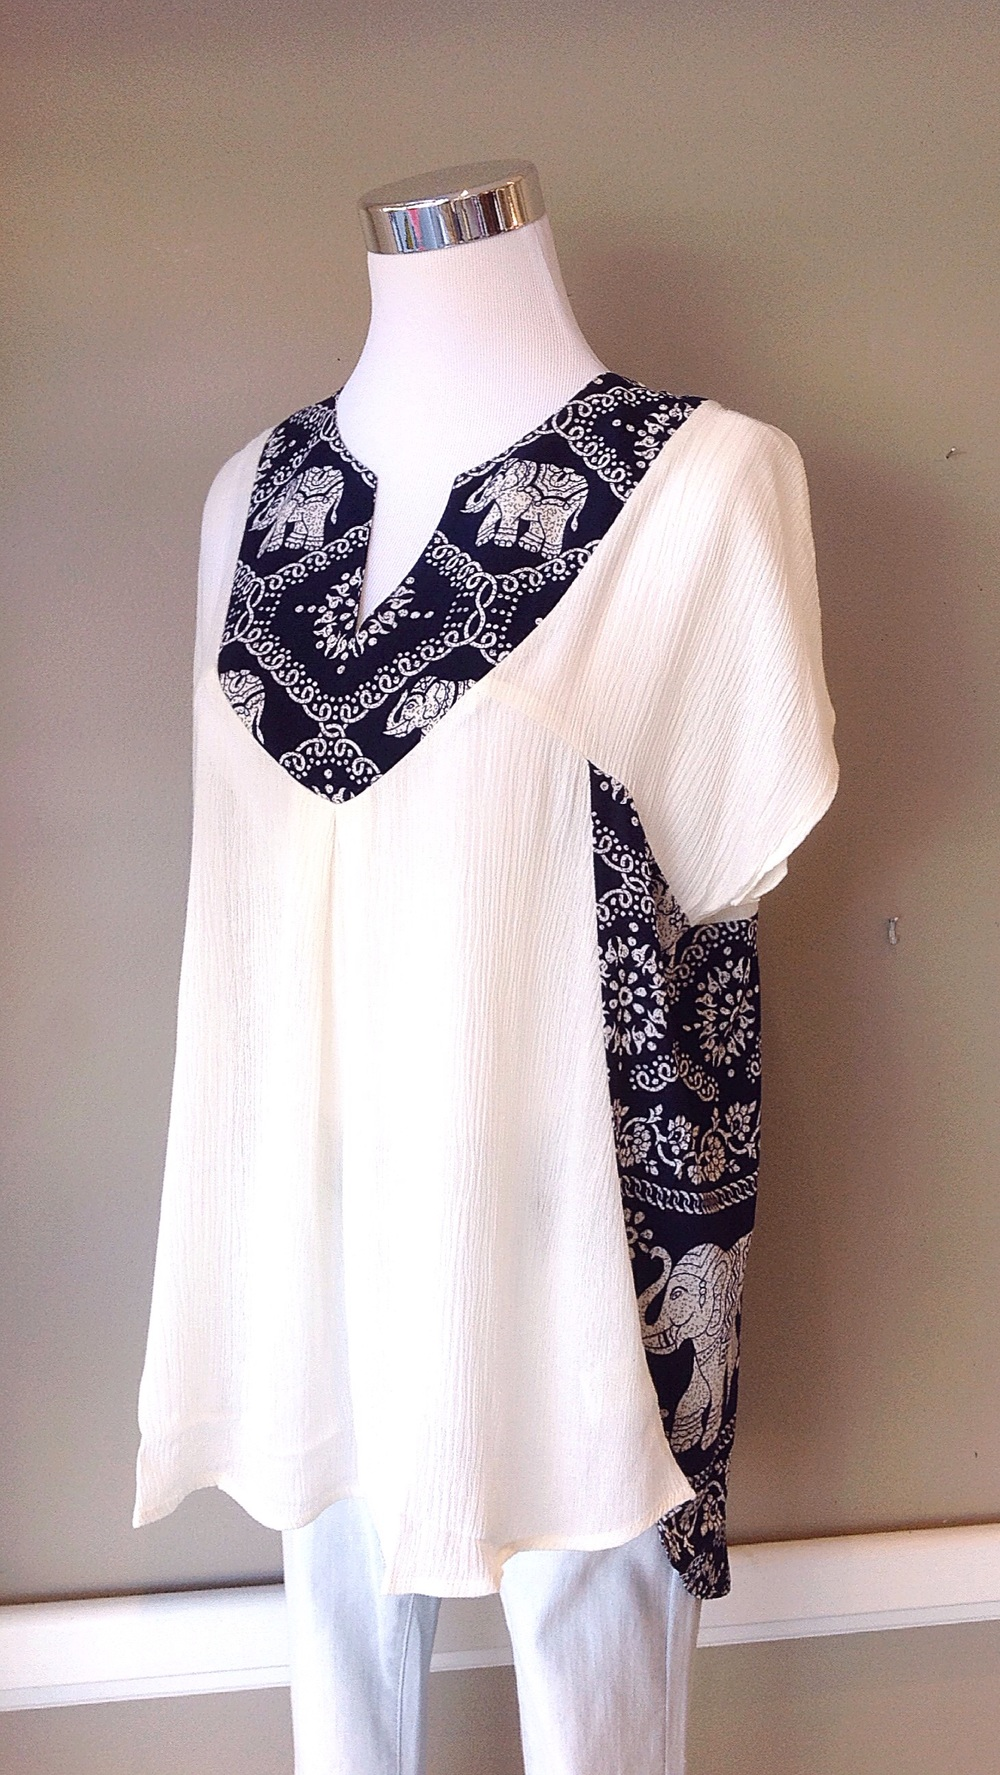 Woven cream blouse with contrasting navy elephant print, $34